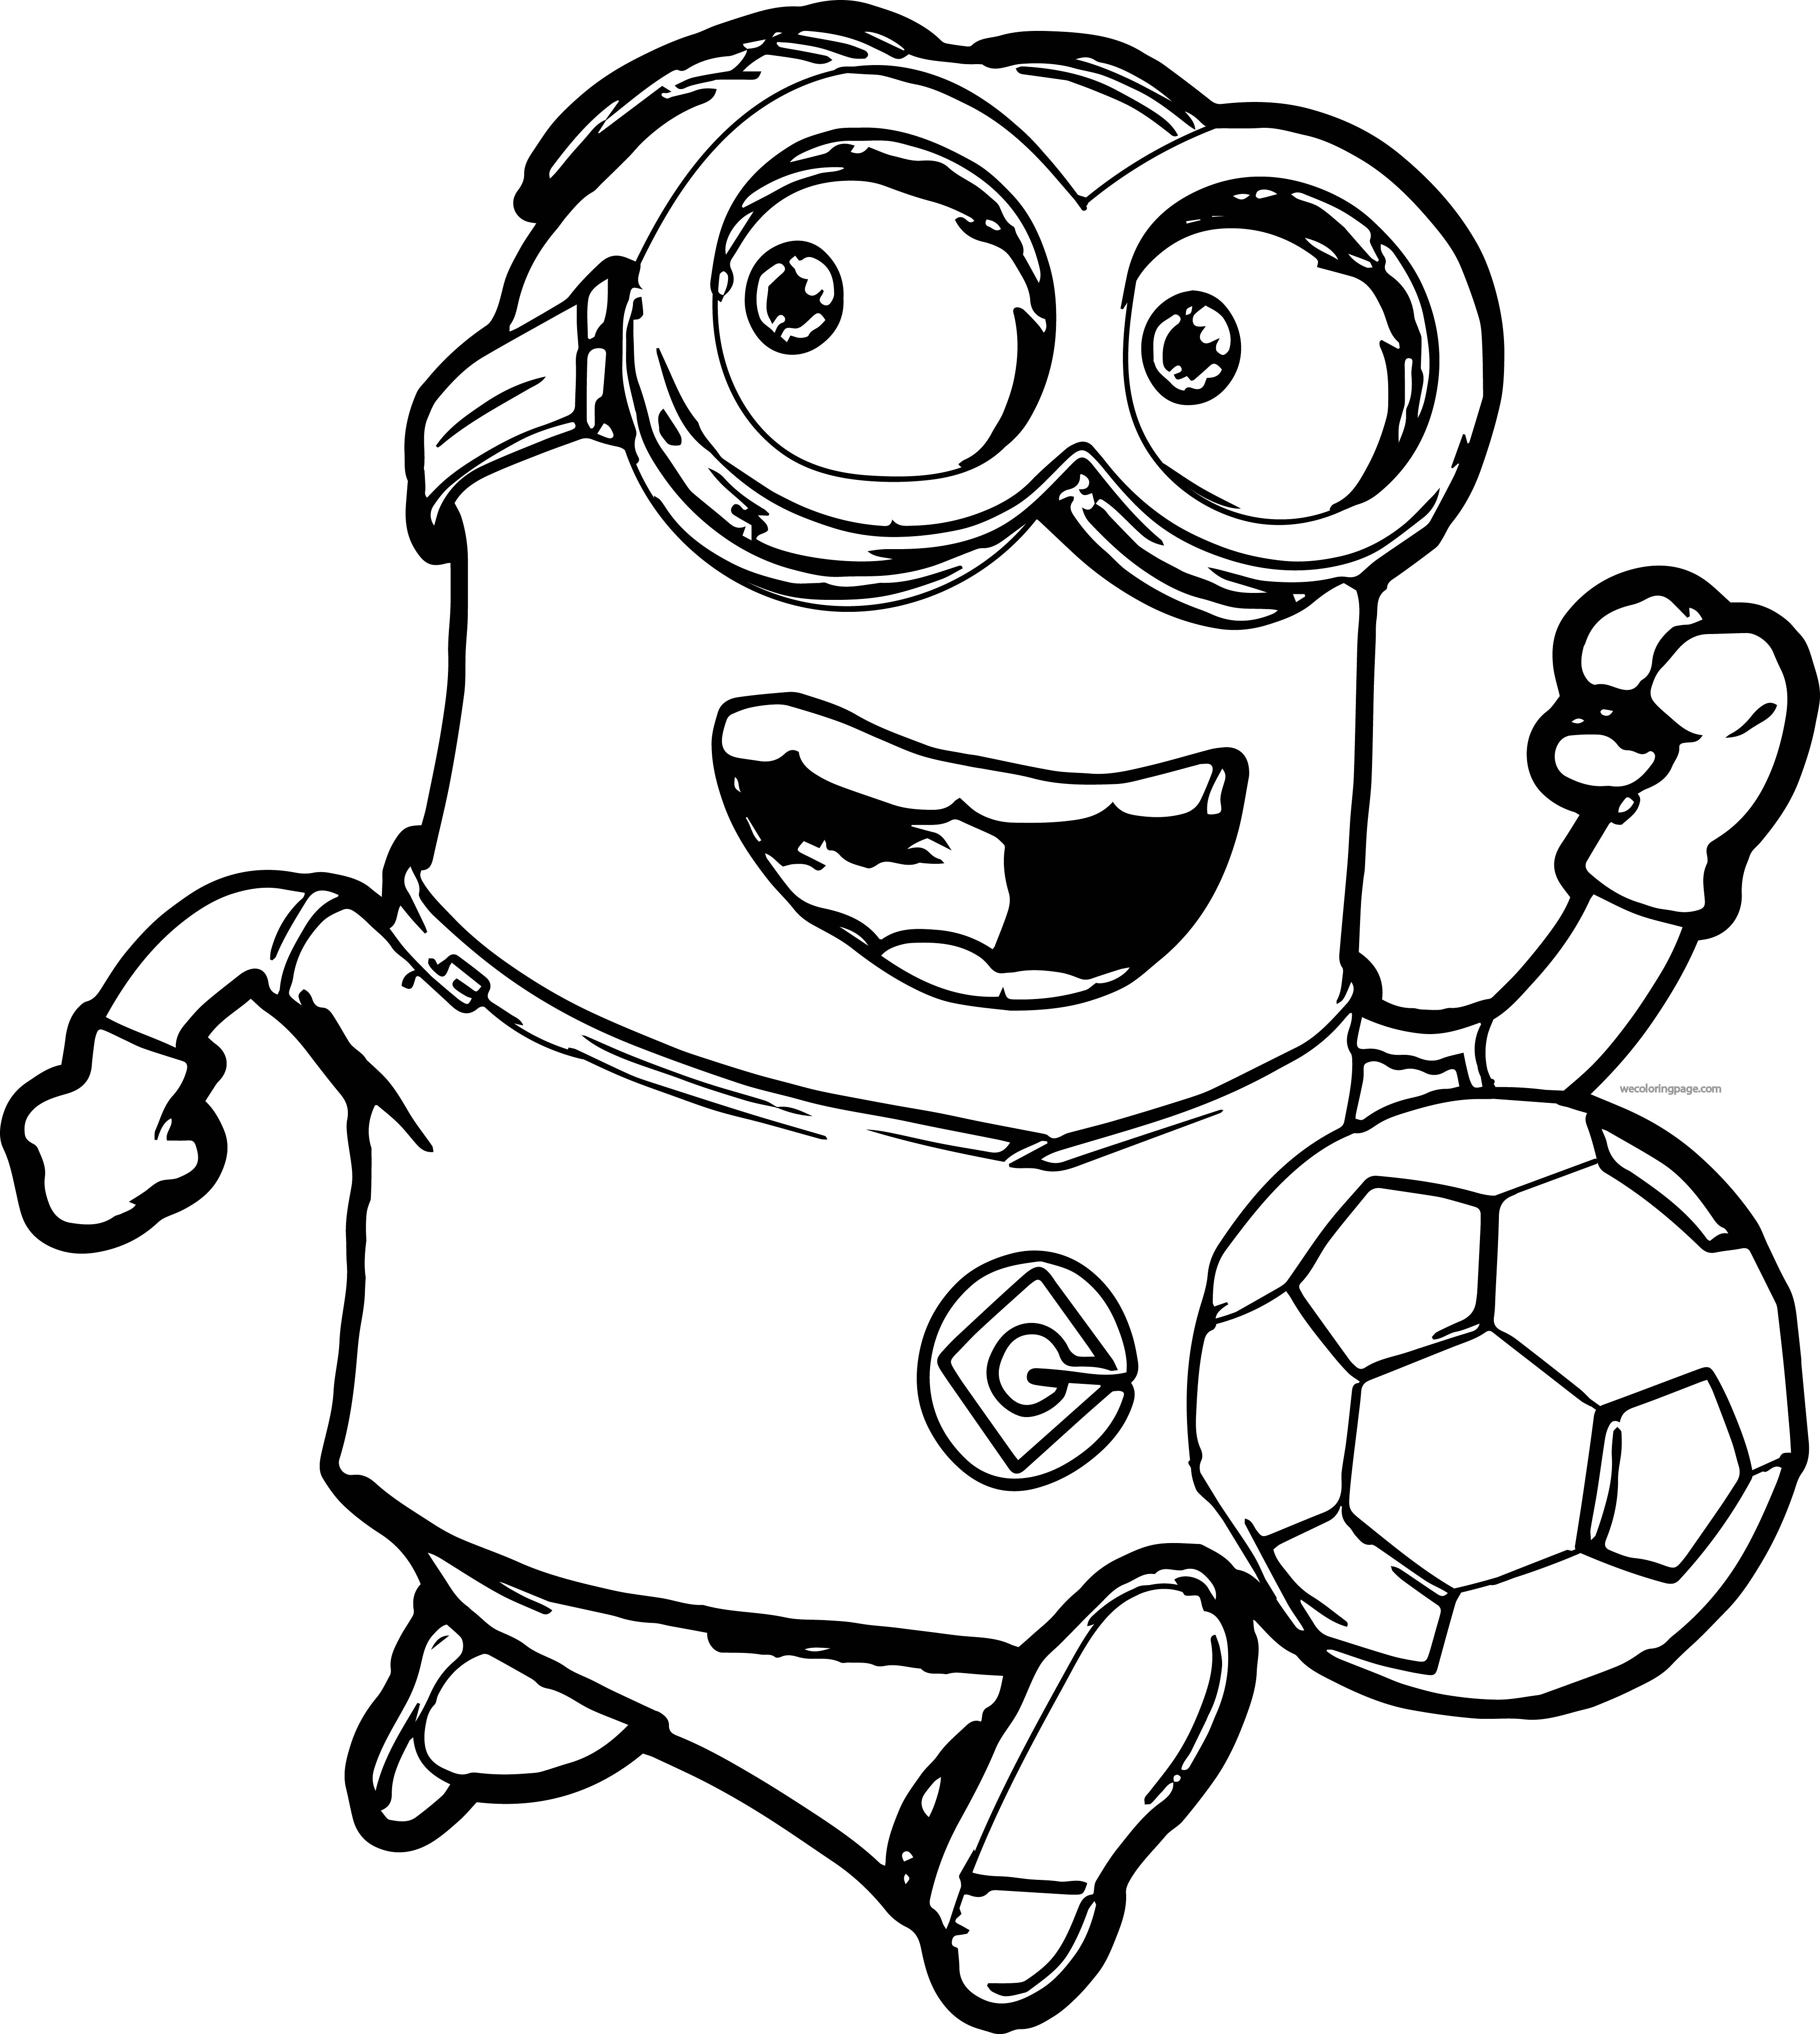 coloring pages for preschool free printable preschool coloring pages best coloring for coloring preschool pages